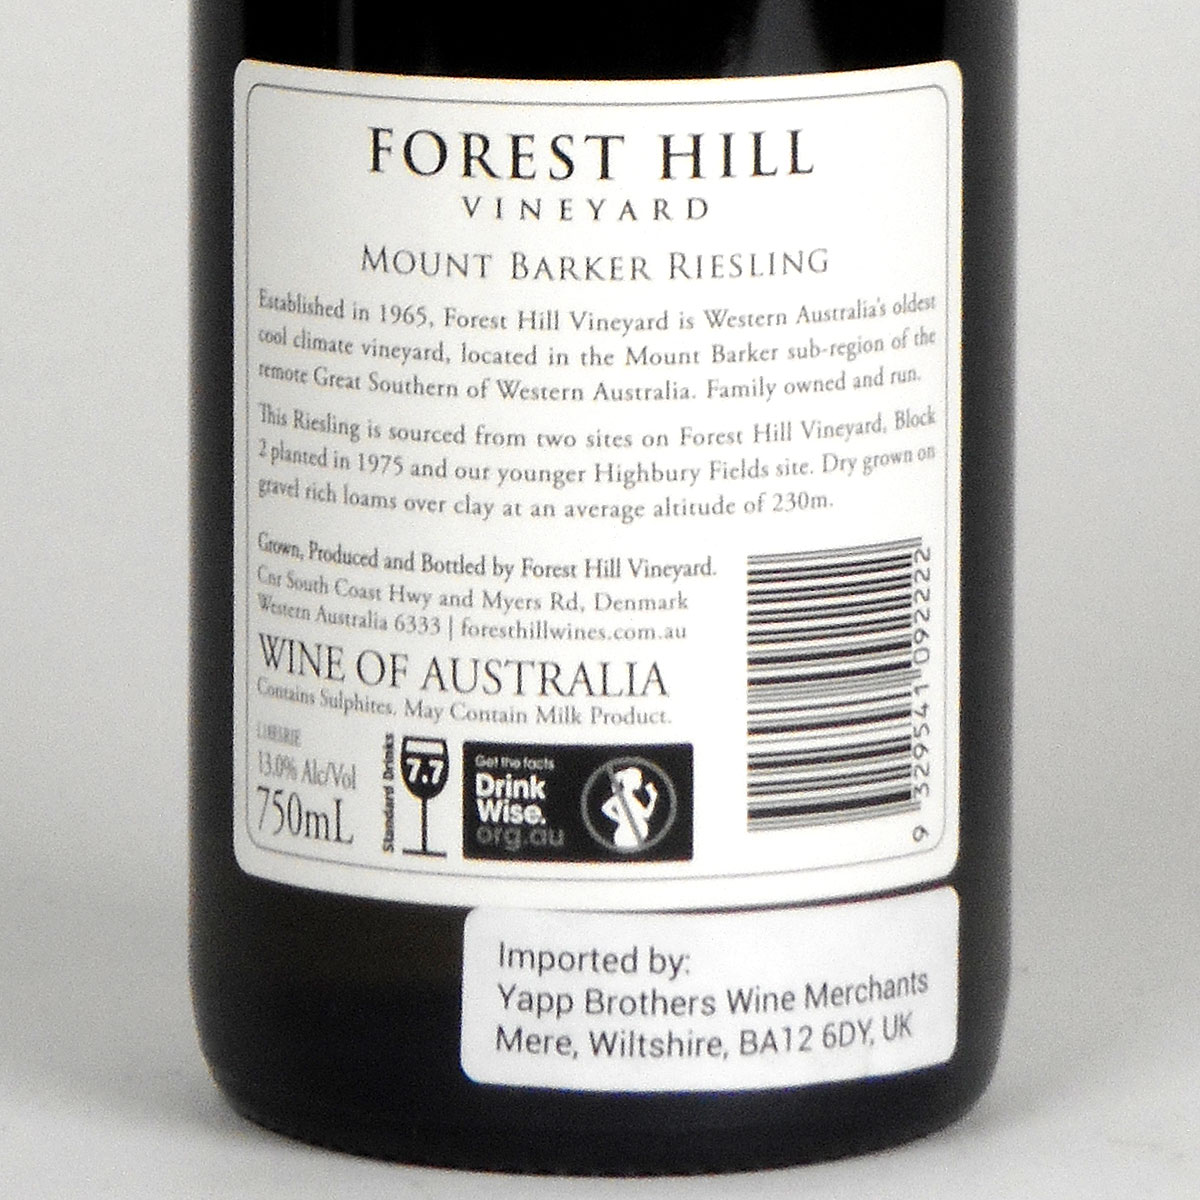 Forest Hill Vineyard: 'Estate' Riesling 2019 - Bottle Rear Label